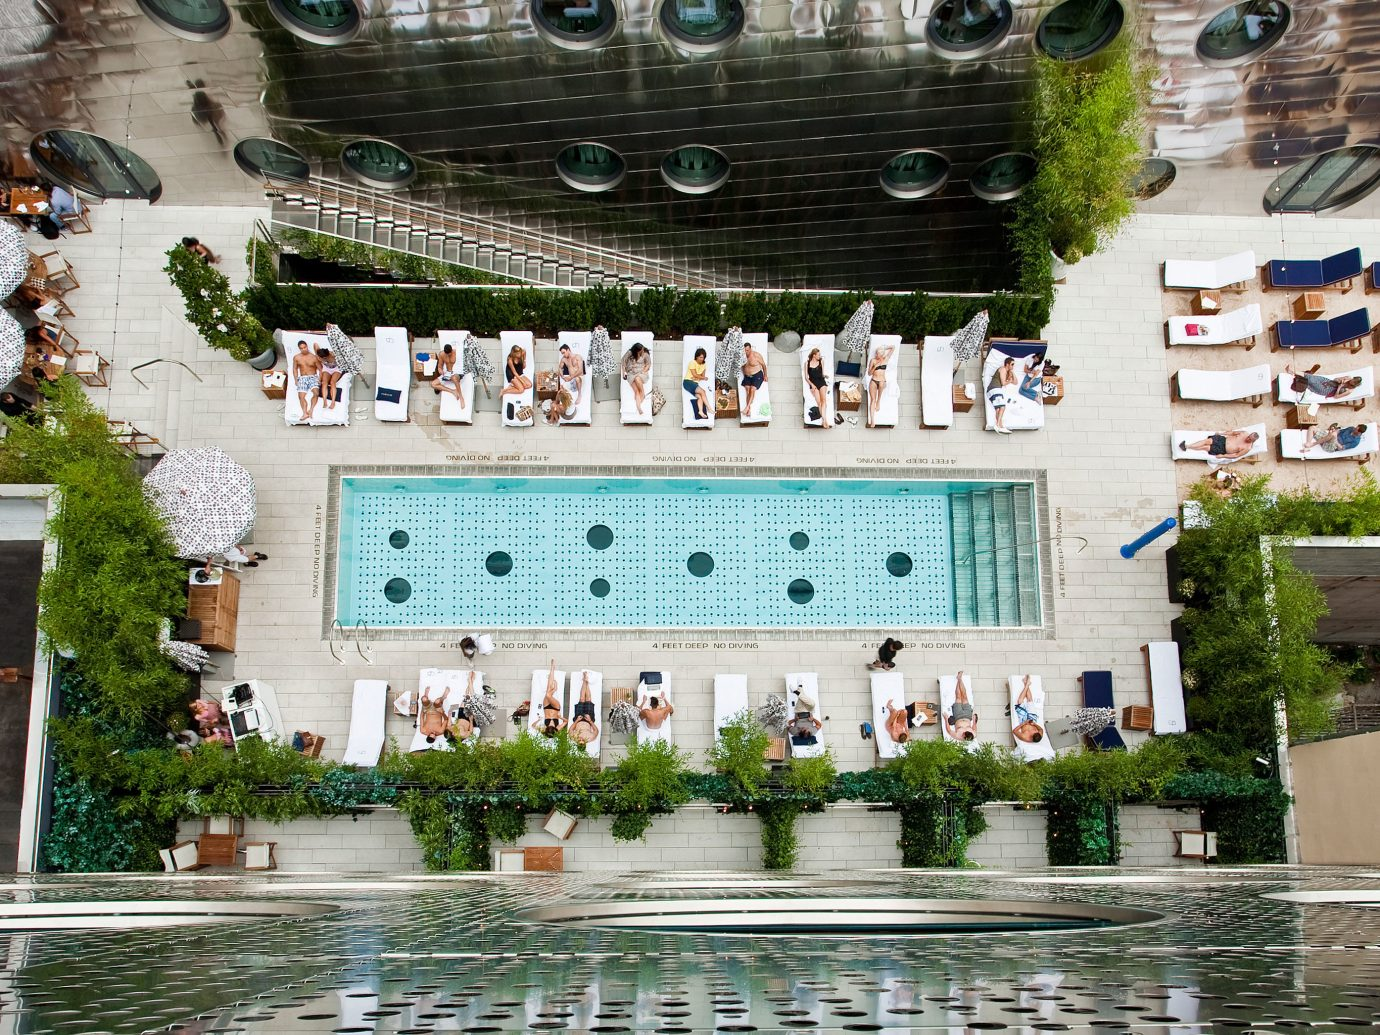 Design Hip Modern Offbeat Patio Pool Rooftop tourism estate Resort palace plaza town square water feature fountain